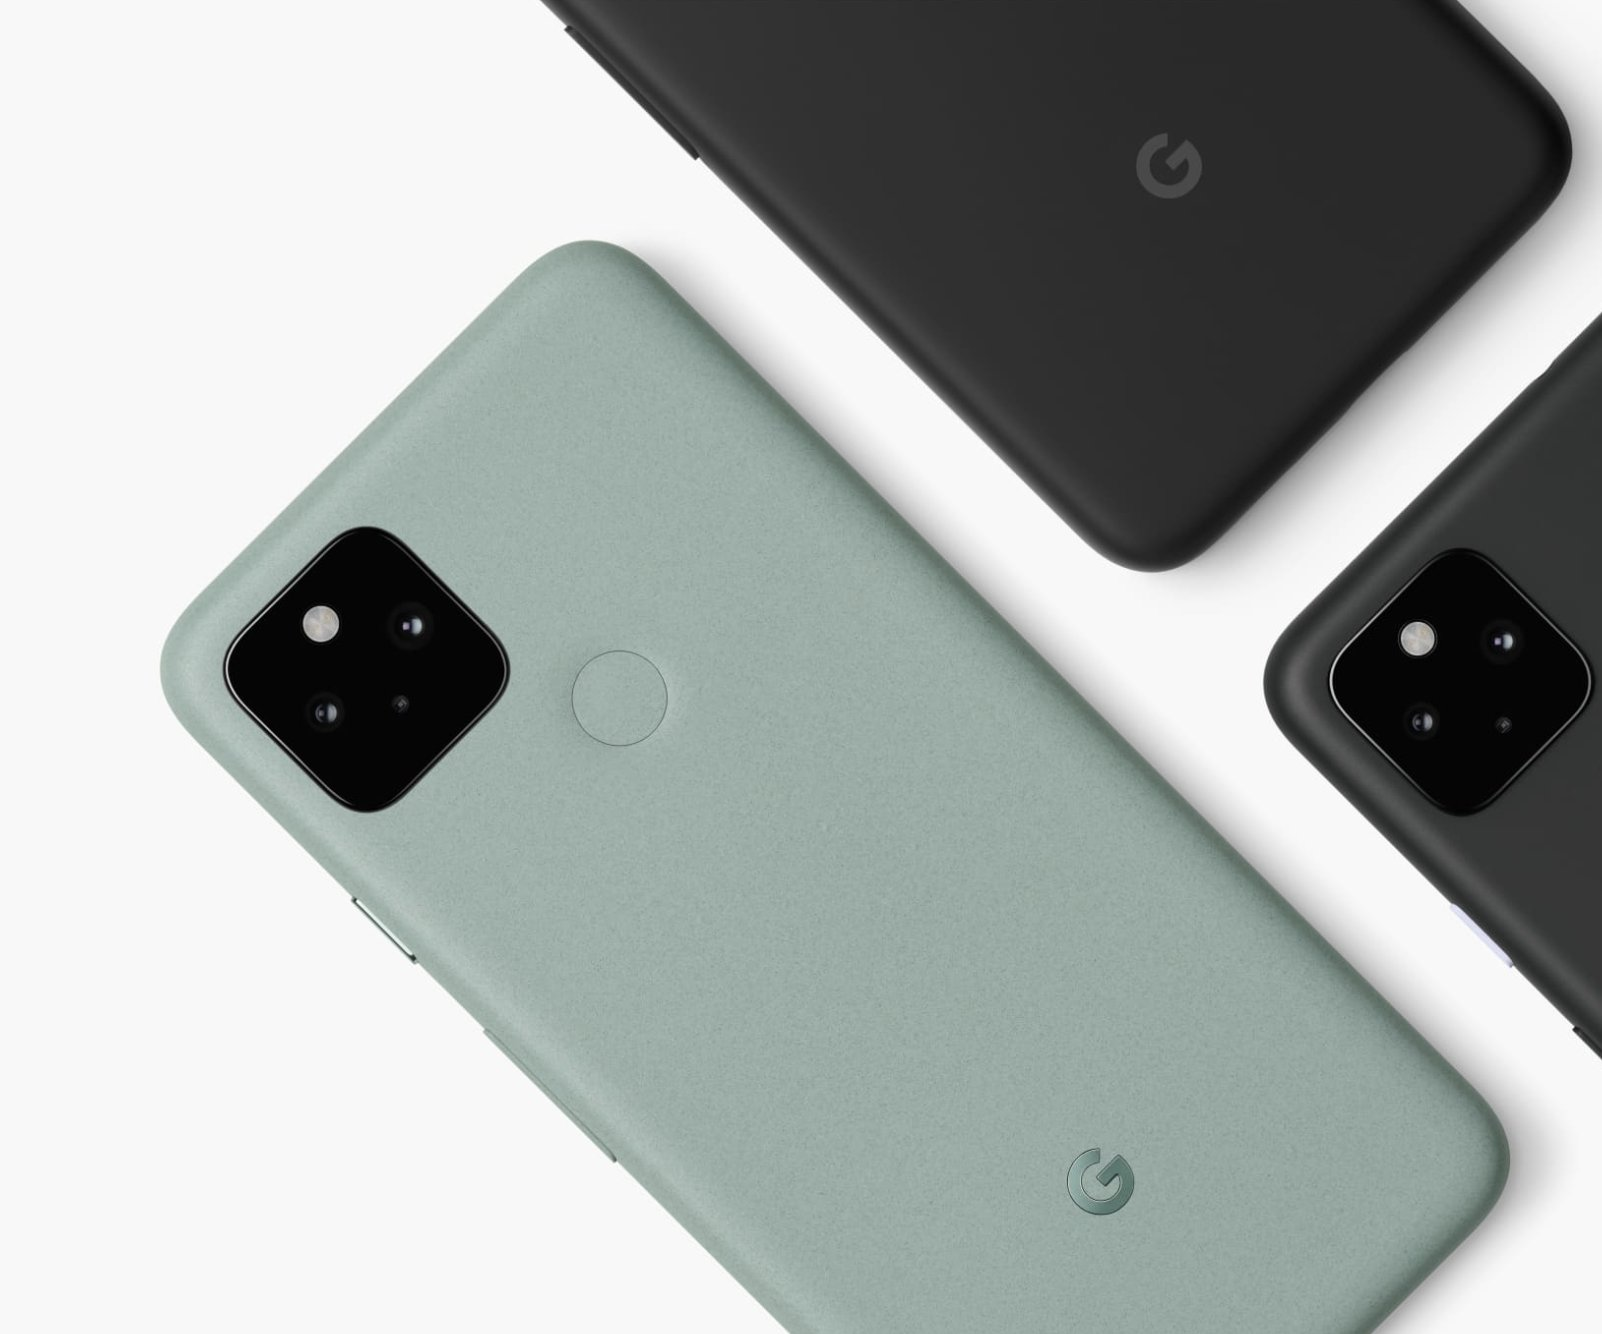 All Made by Google products now use recycled materials